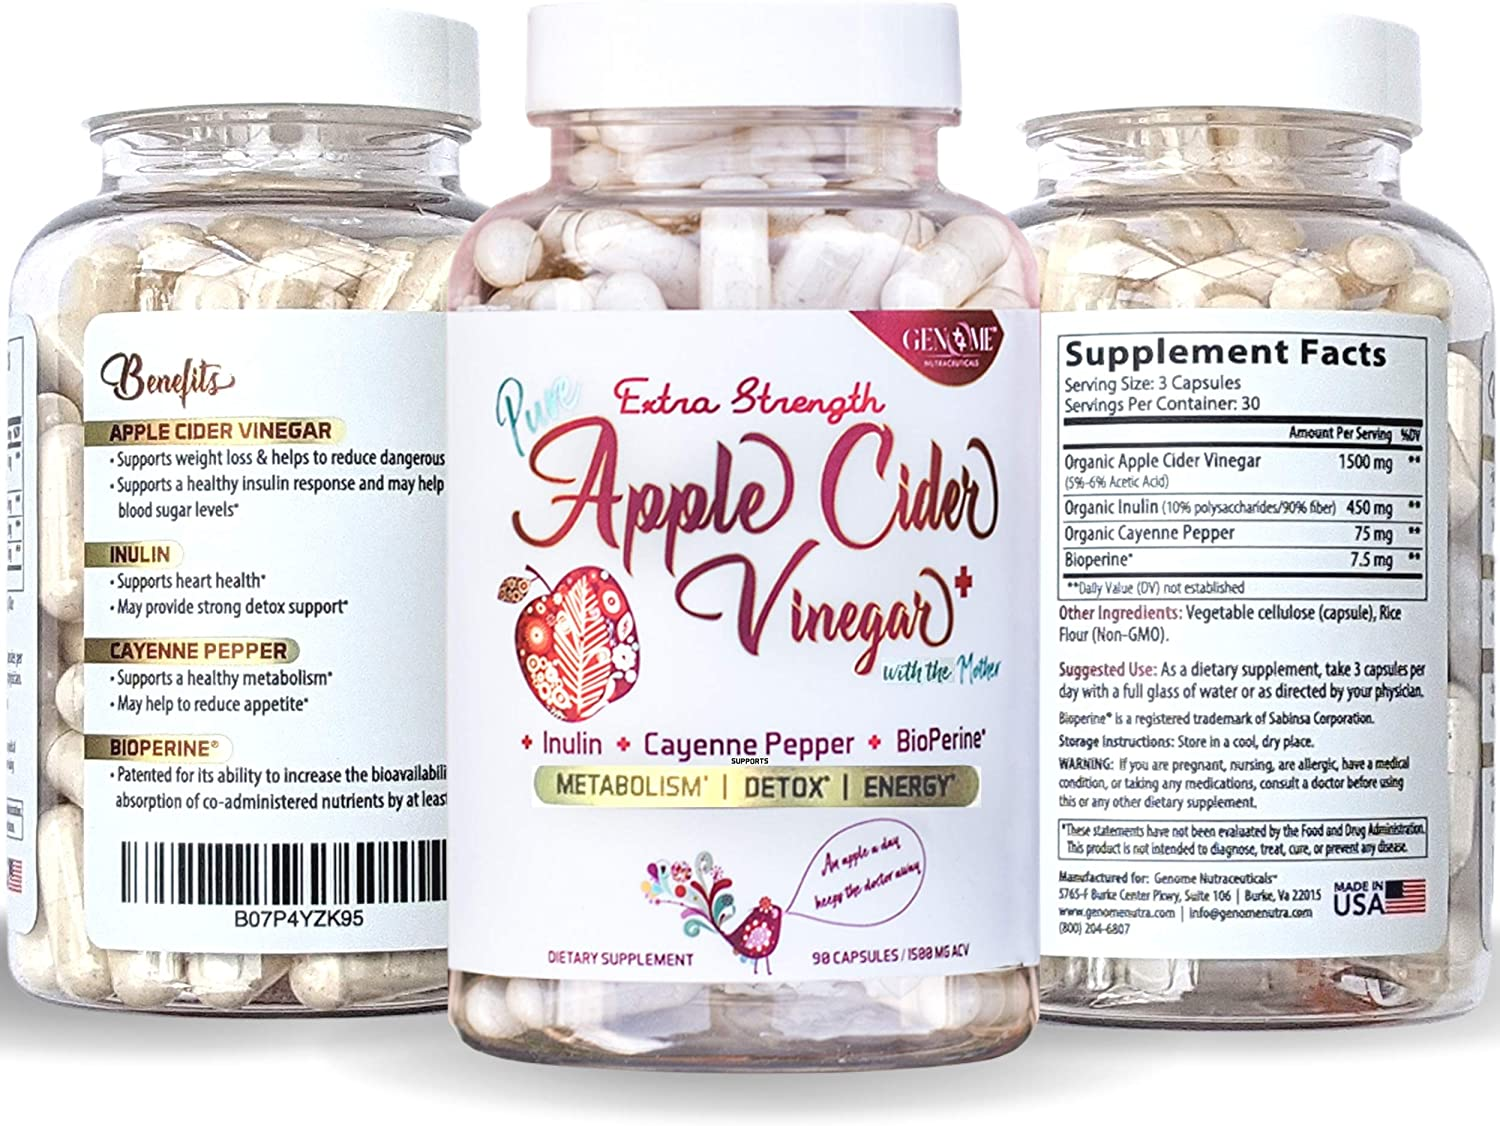 Potent Apple Cider Vinegar + Organic Mother, Inulin, Cayenne Pepper & BioPerine Capsules | Advanced ACV Supplement Formula in a Pill by Genome Nutra | Great for Digestion and Health (1500mg)